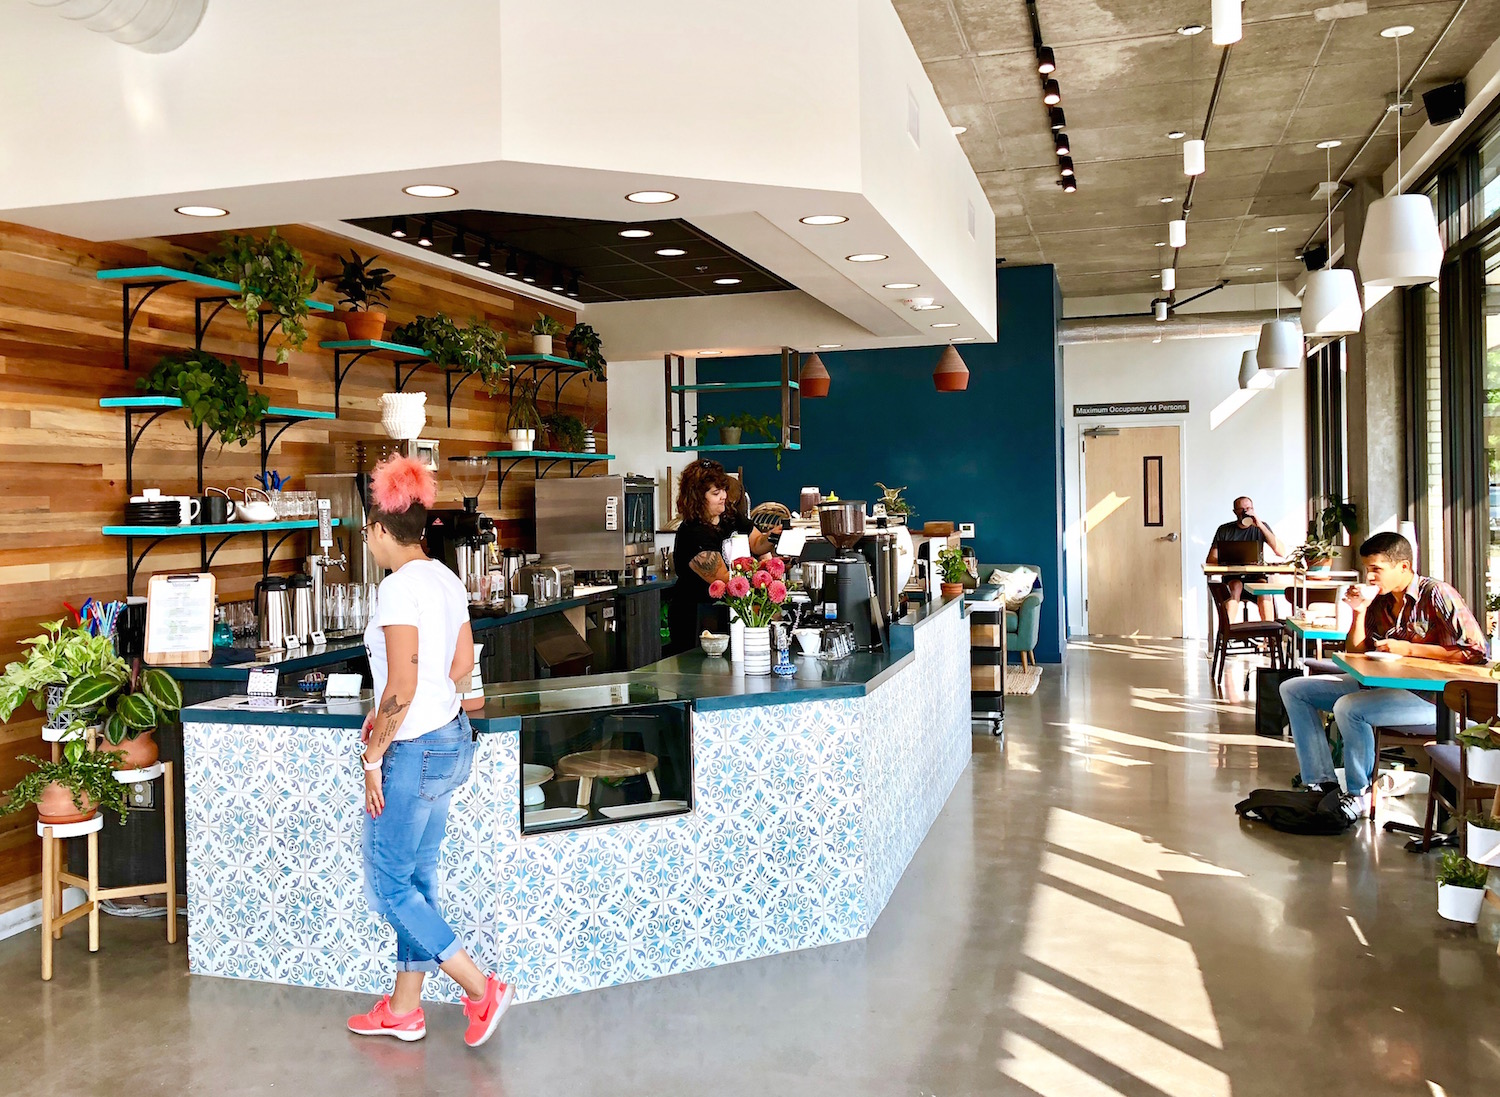 Nossa Familia Coffee's Seven Corners Café in Portland, Oregon. Opened in August 2018, which is aiming to become a Zero Waste & Carbon Neutral café.